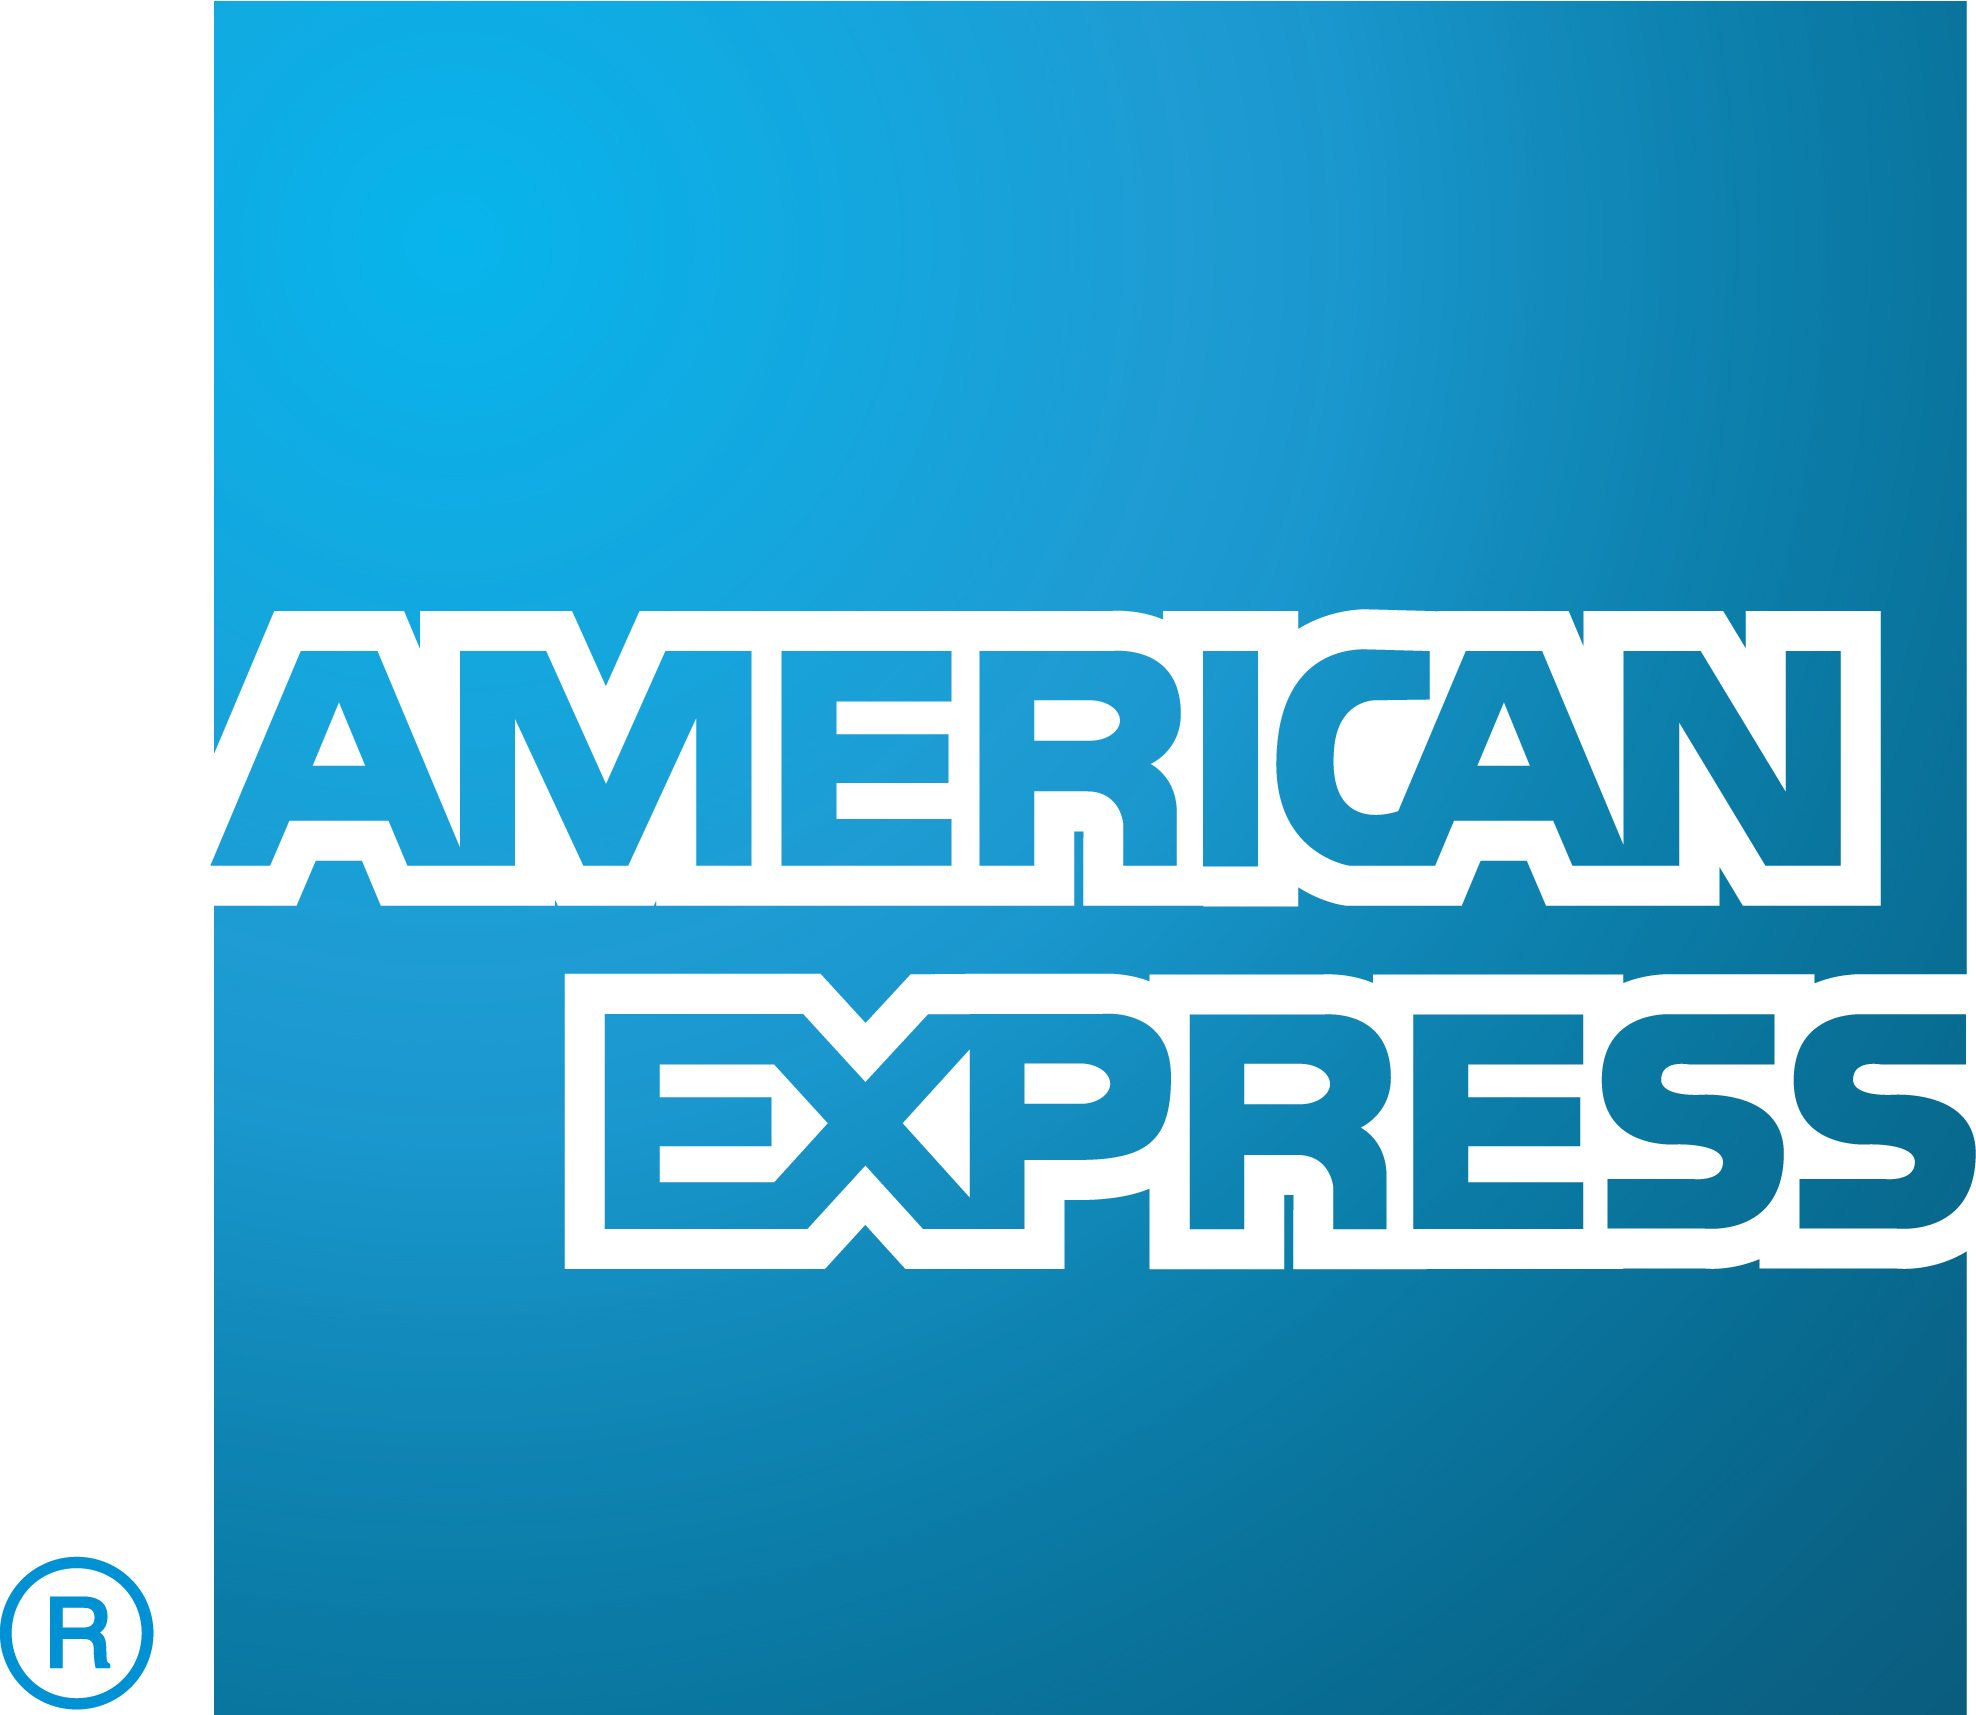 Save yourself From Credit Card issues, Call AMEX Customer Service @08700626729